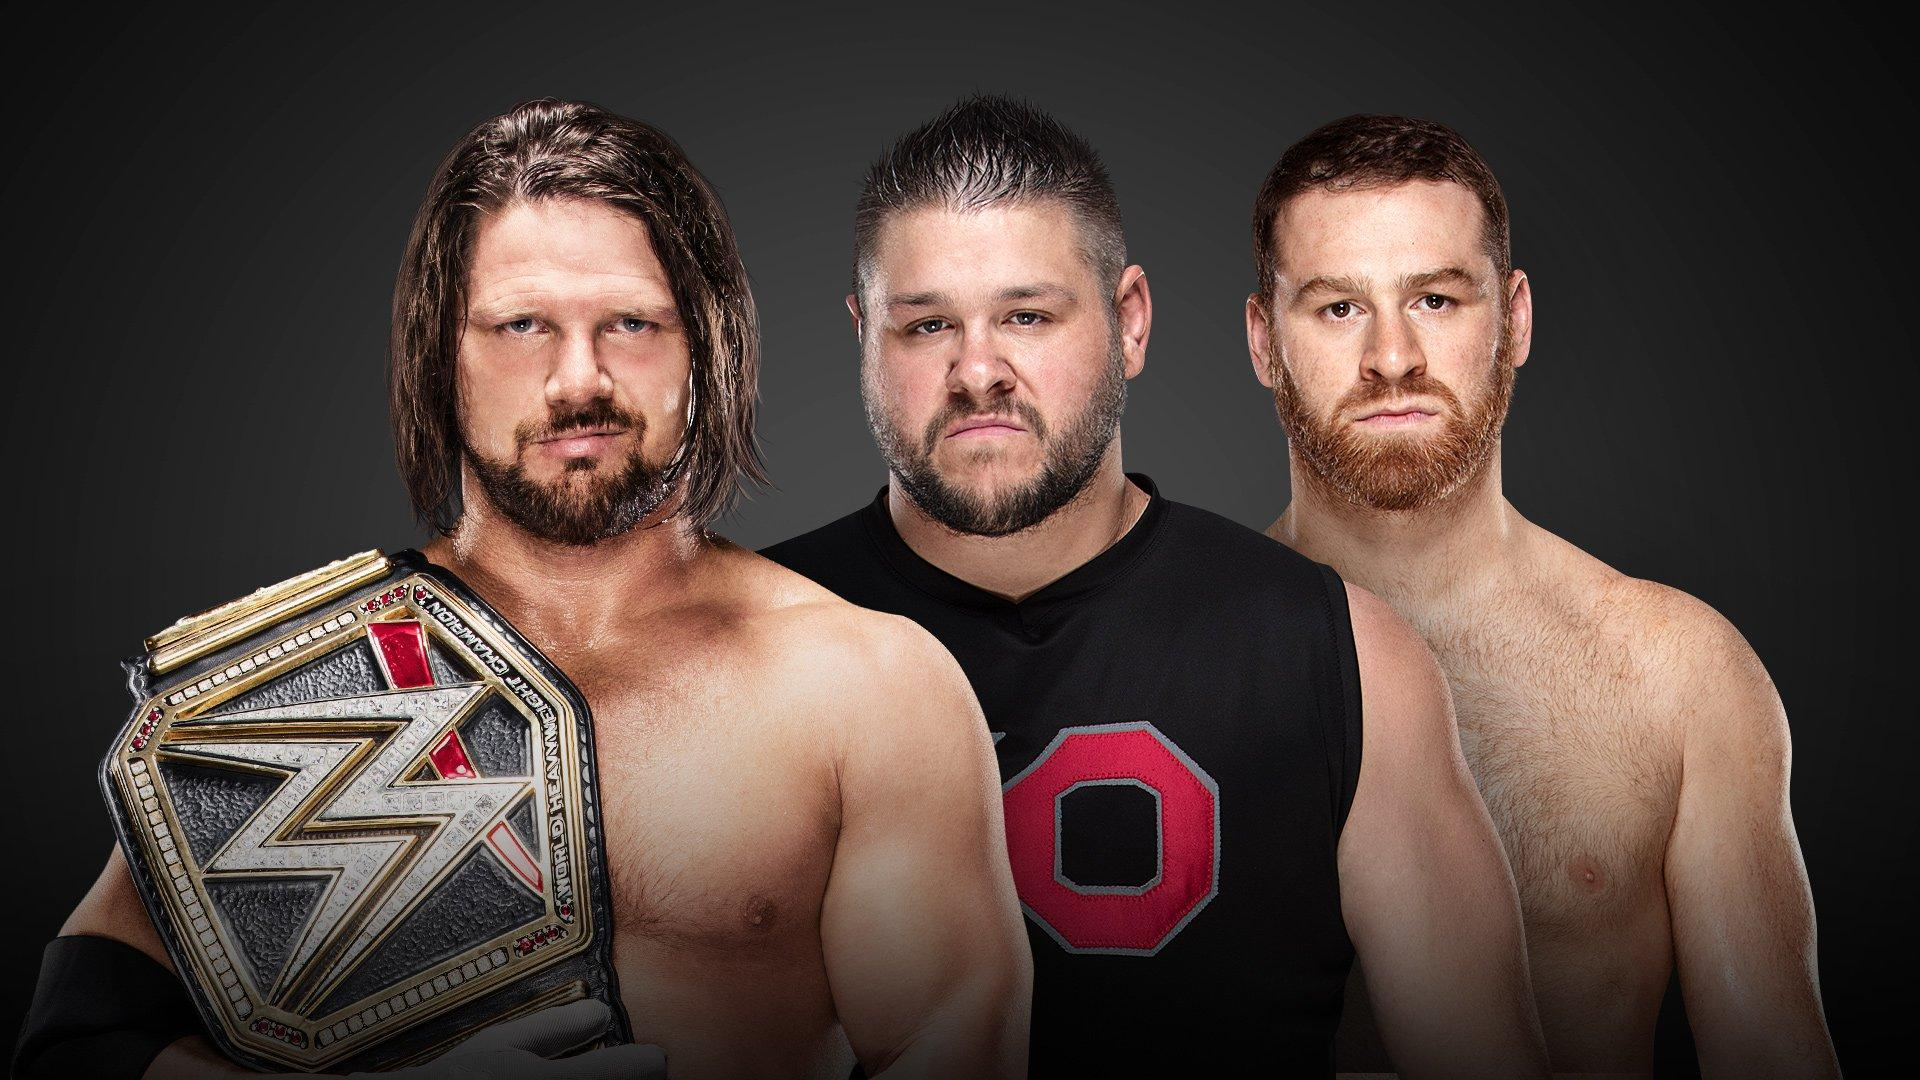 Wwe Championship Match Set For Royal Rumble New Rumble